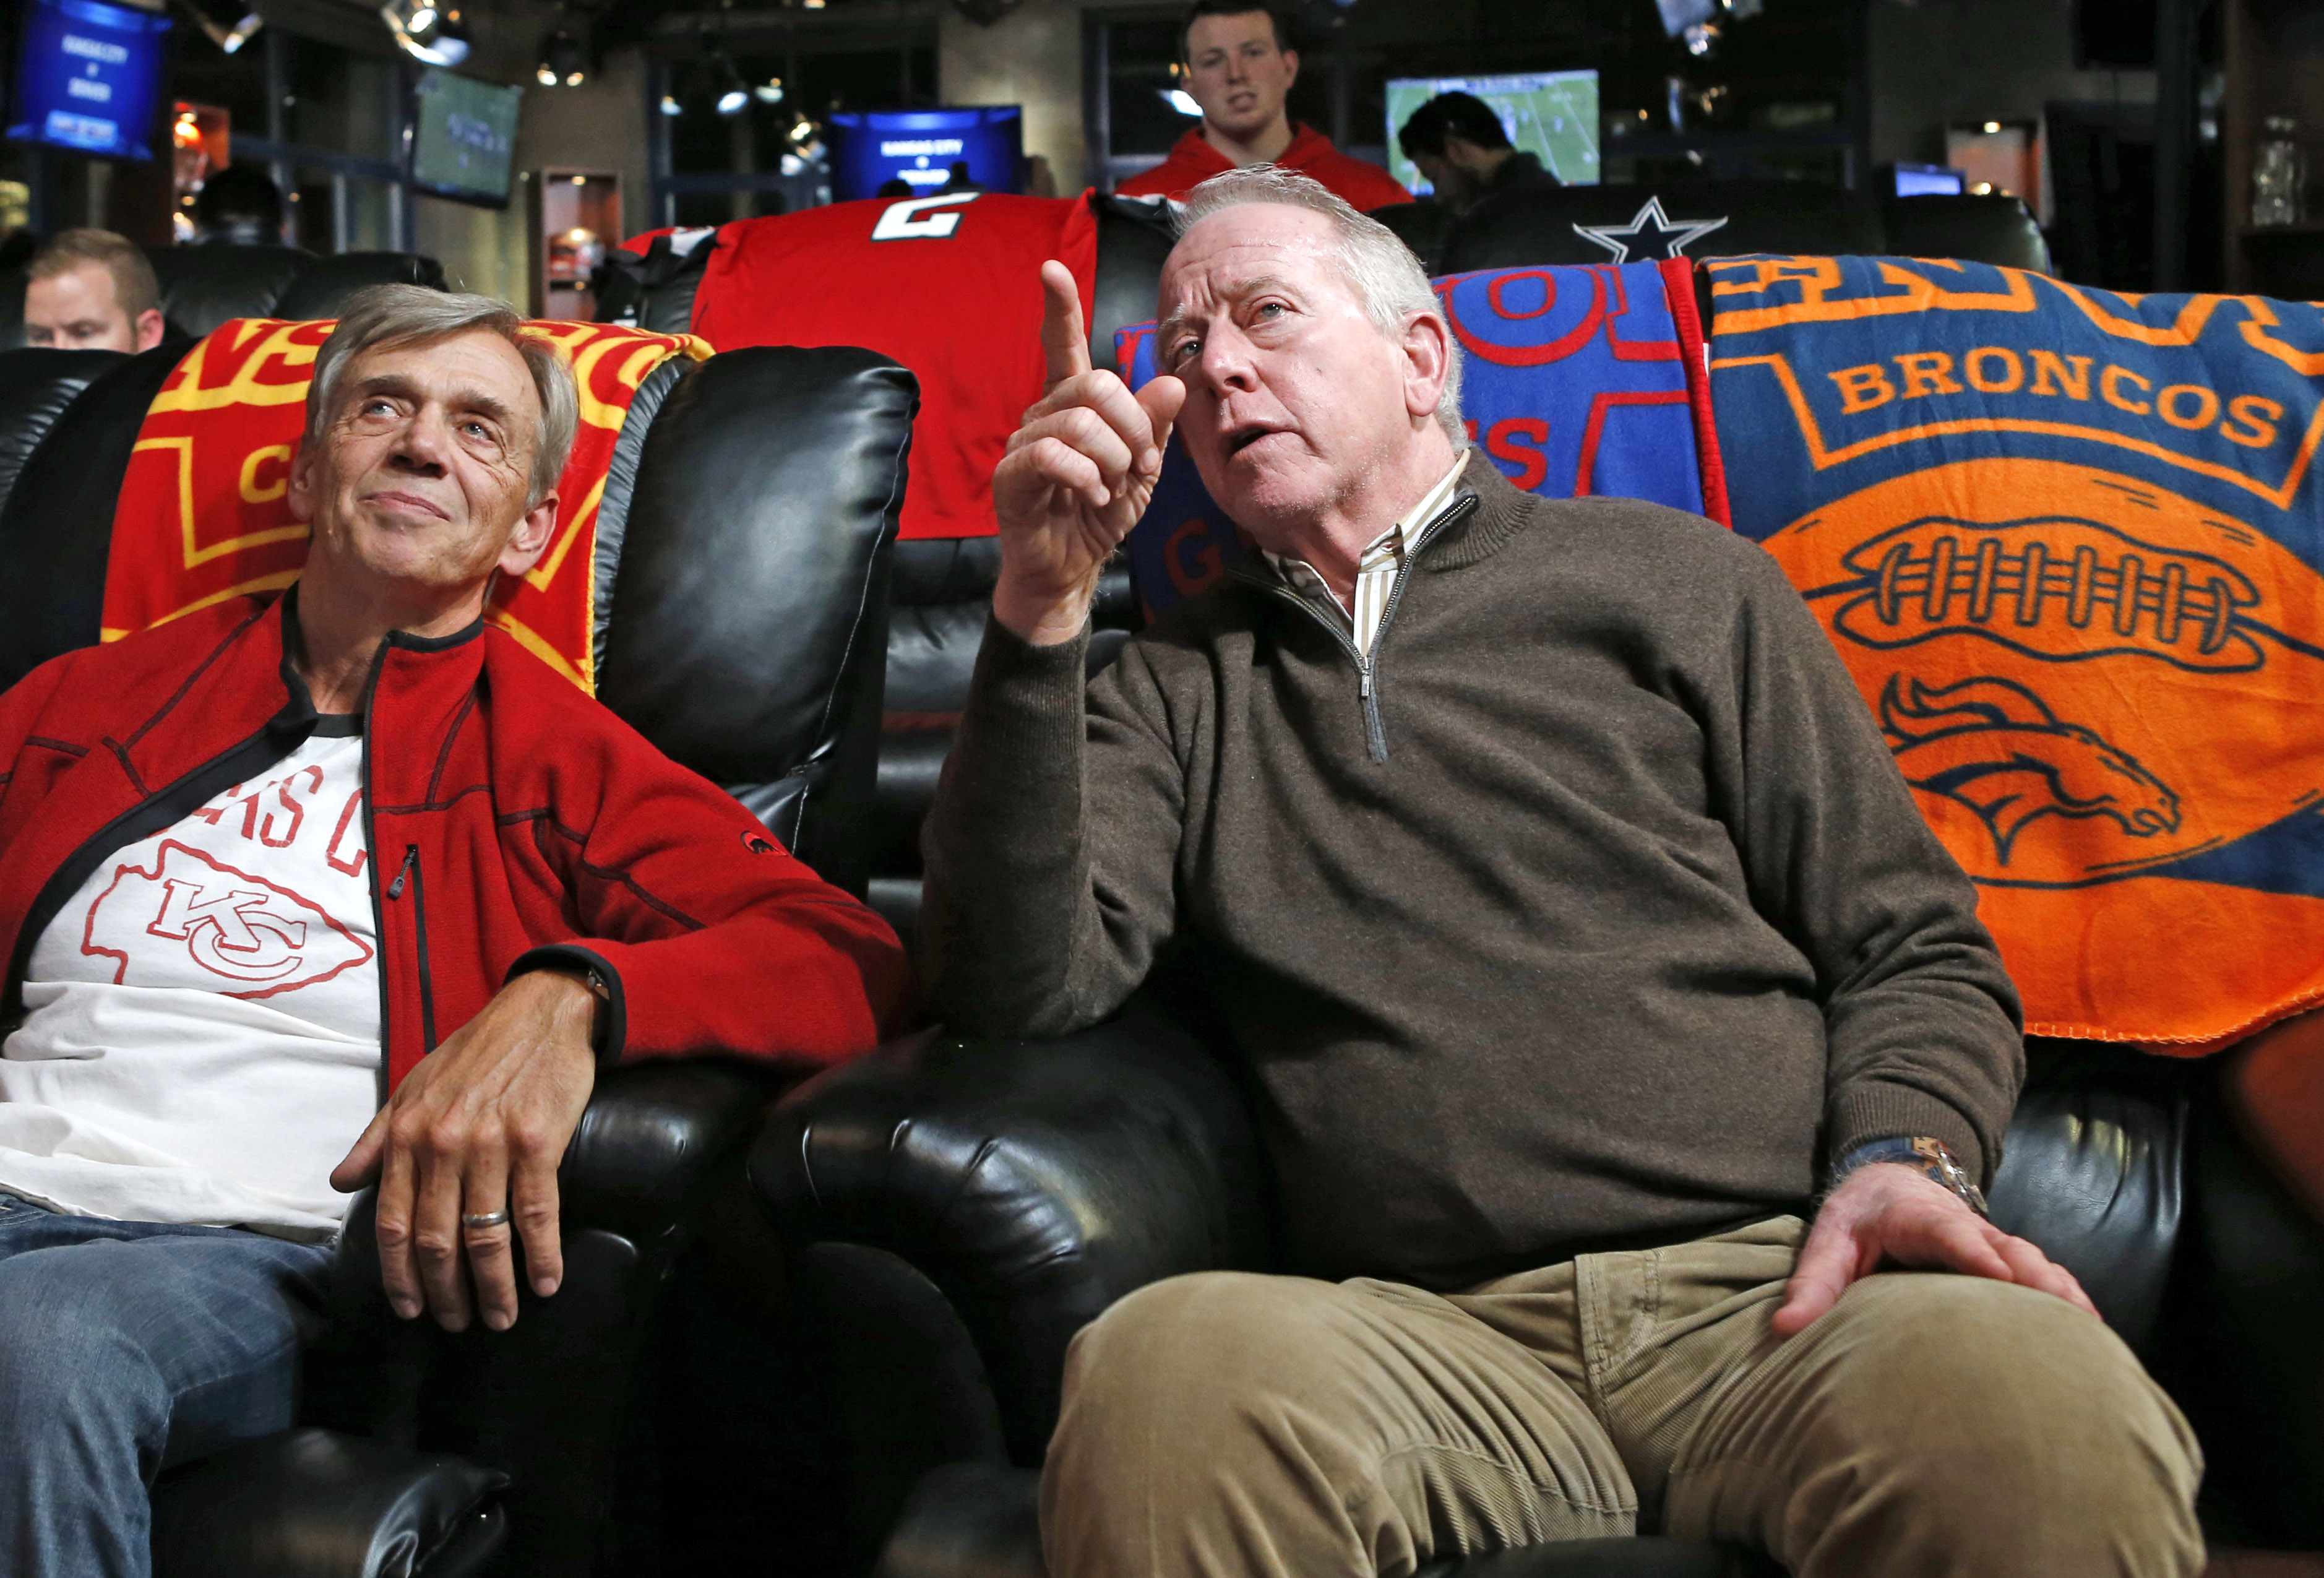 Doug Smith, left, father of Kansas City Chiefs quarterback Alex Smith, talks to Archie Manning, father of Denver Broncos quarterback Peyton Manning and New York Giants quarterback Eli Manning, during halftime of an NFL football game in which the Chiefs fa